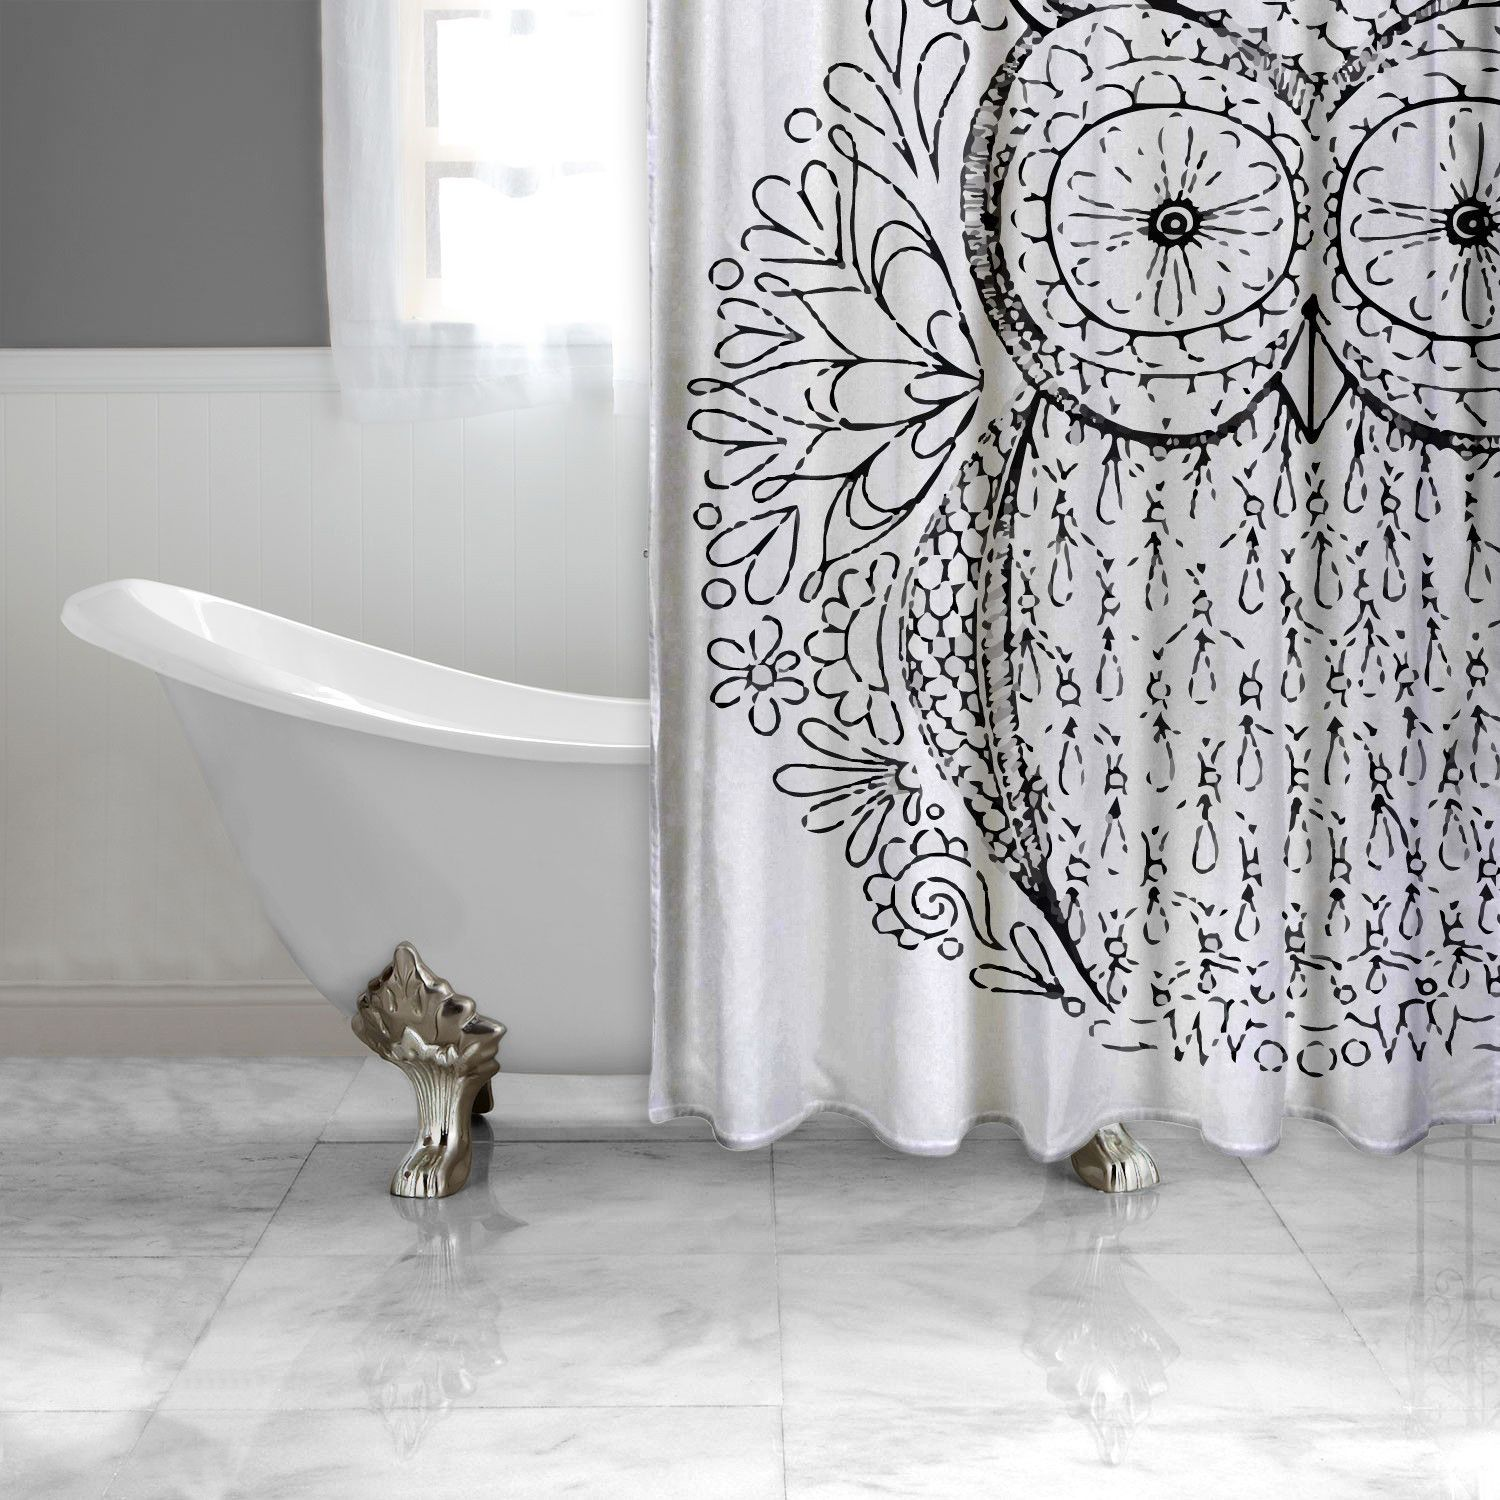 Owl Decor For Bathroom Black And White Owl Shower Curtain Adult Coloring Book